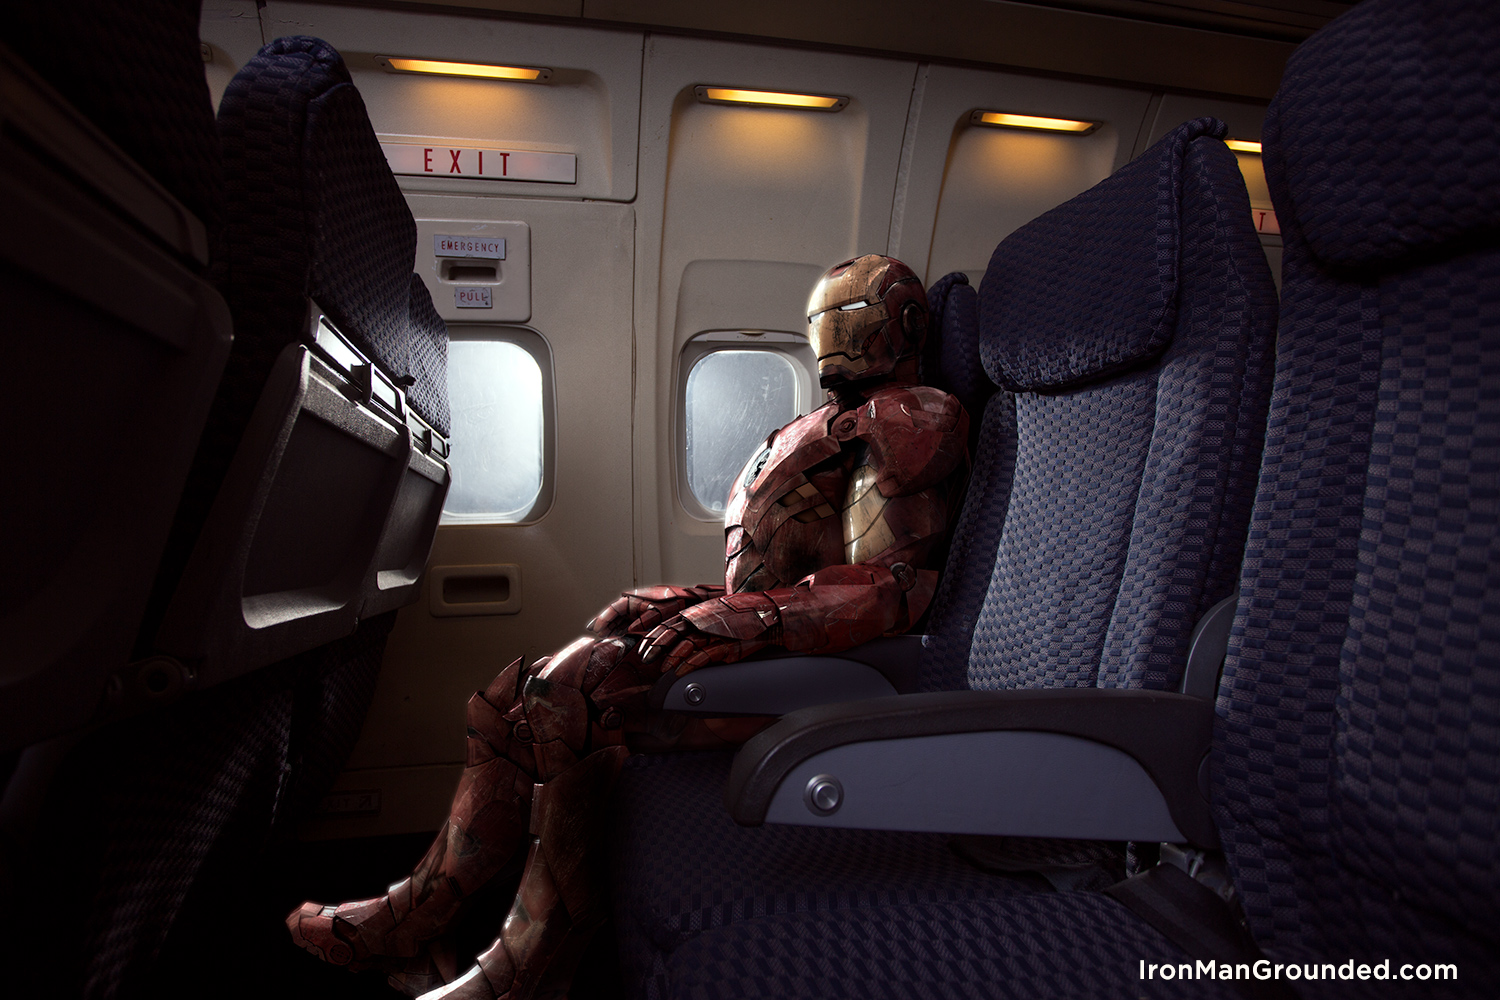 7_iron_man_grounded_flies_economy_class_raffael_dickreuter